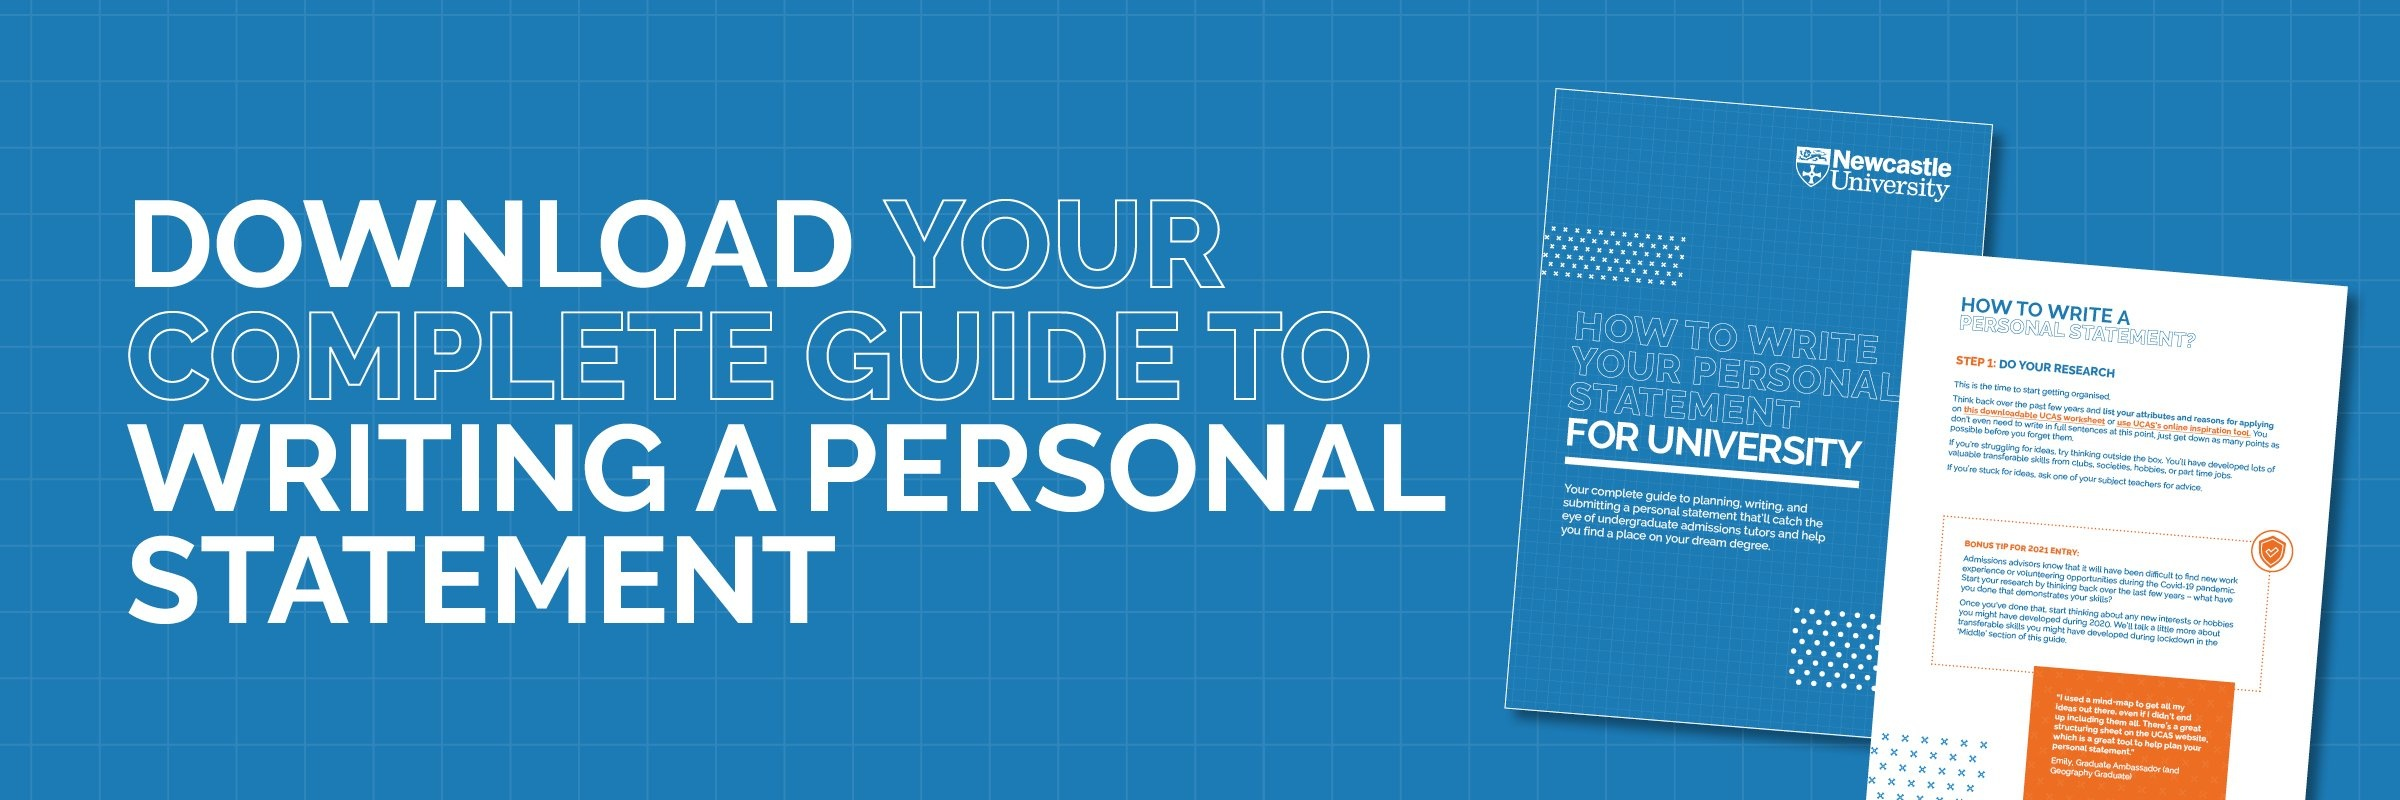 download your guide to writing a personal statement